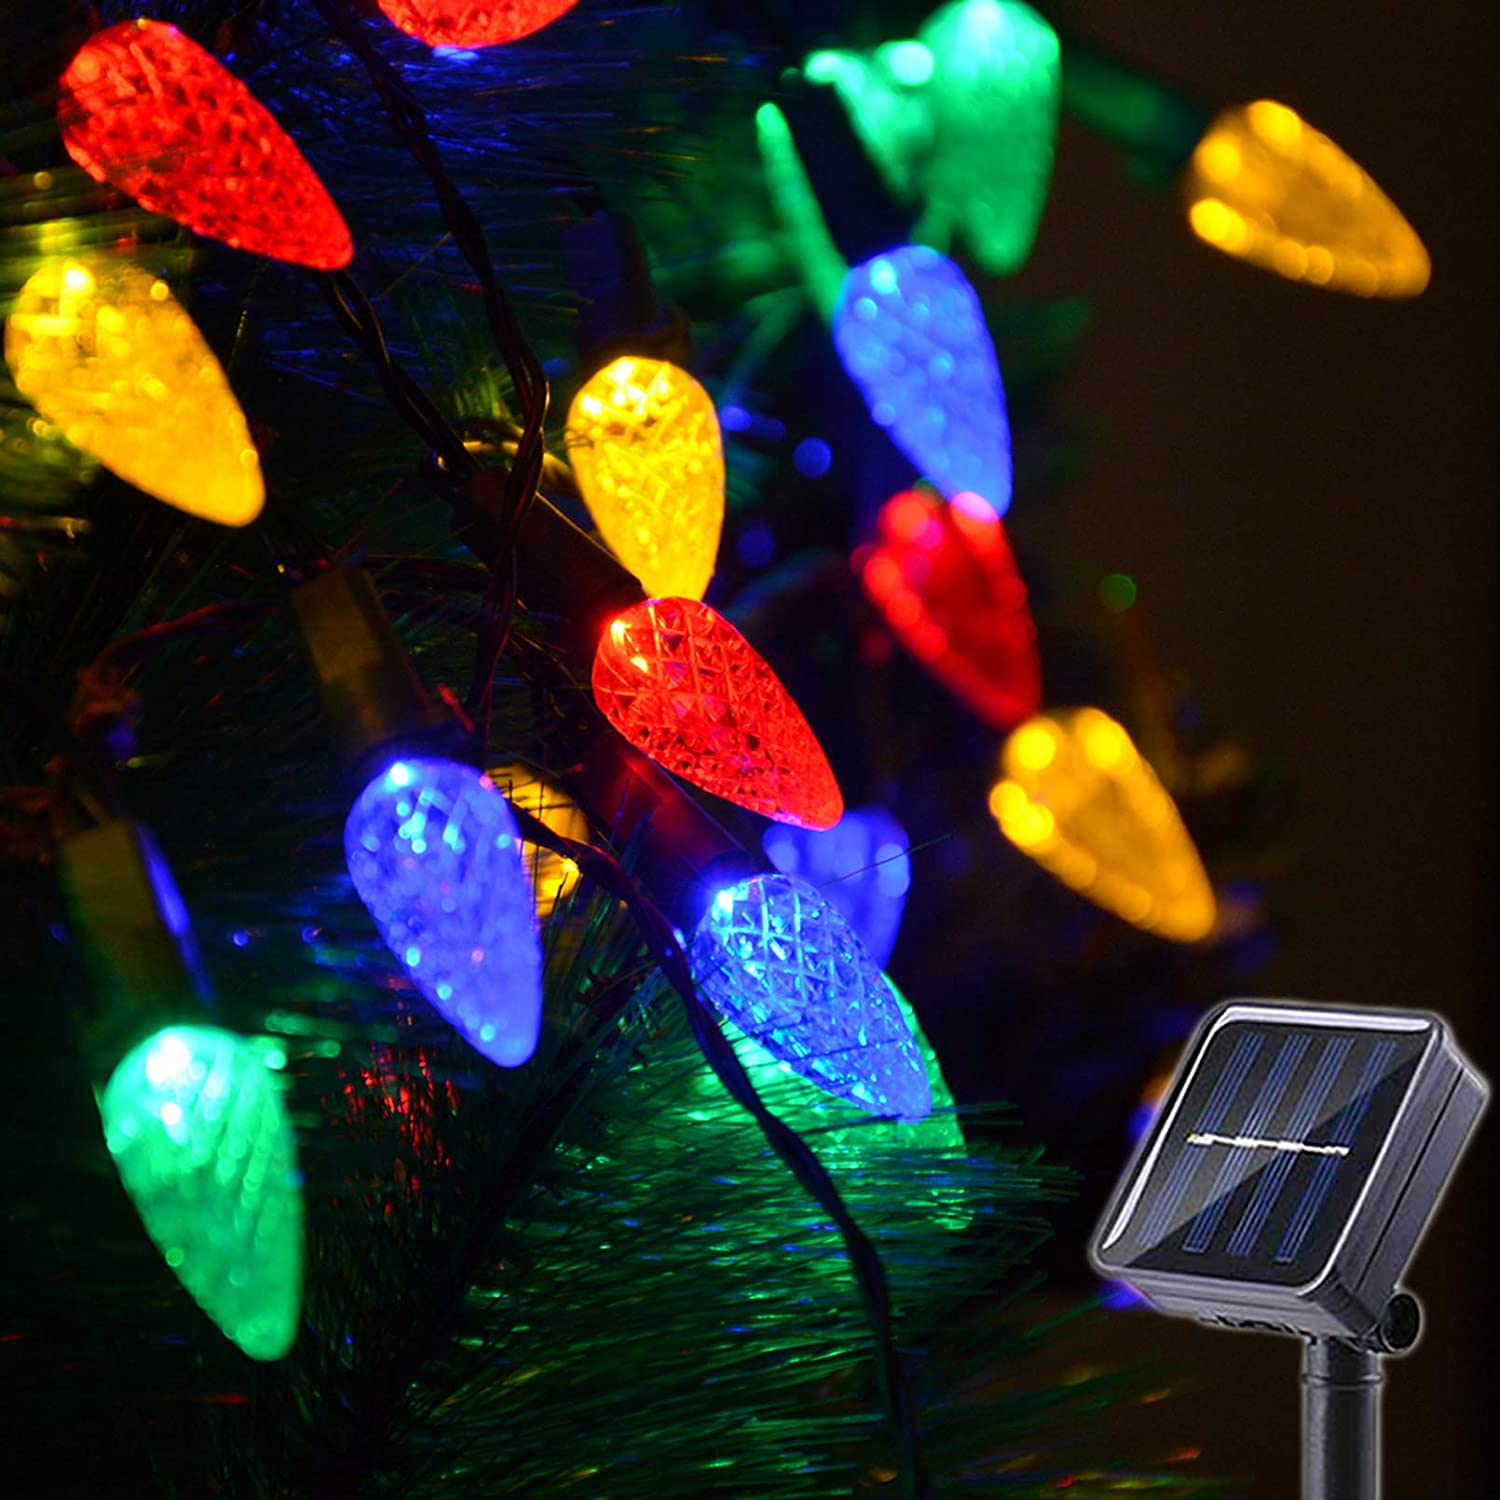 Solar Christmas Lights Outdoor C6 Strawberry String Lights, LED Christmas Fairy Lights 50 LEDs Solar Operated Rechargeable Garden Lights for Christmas Tree, Holiday, Arbor Decor (Multicolor, 8 Modes)